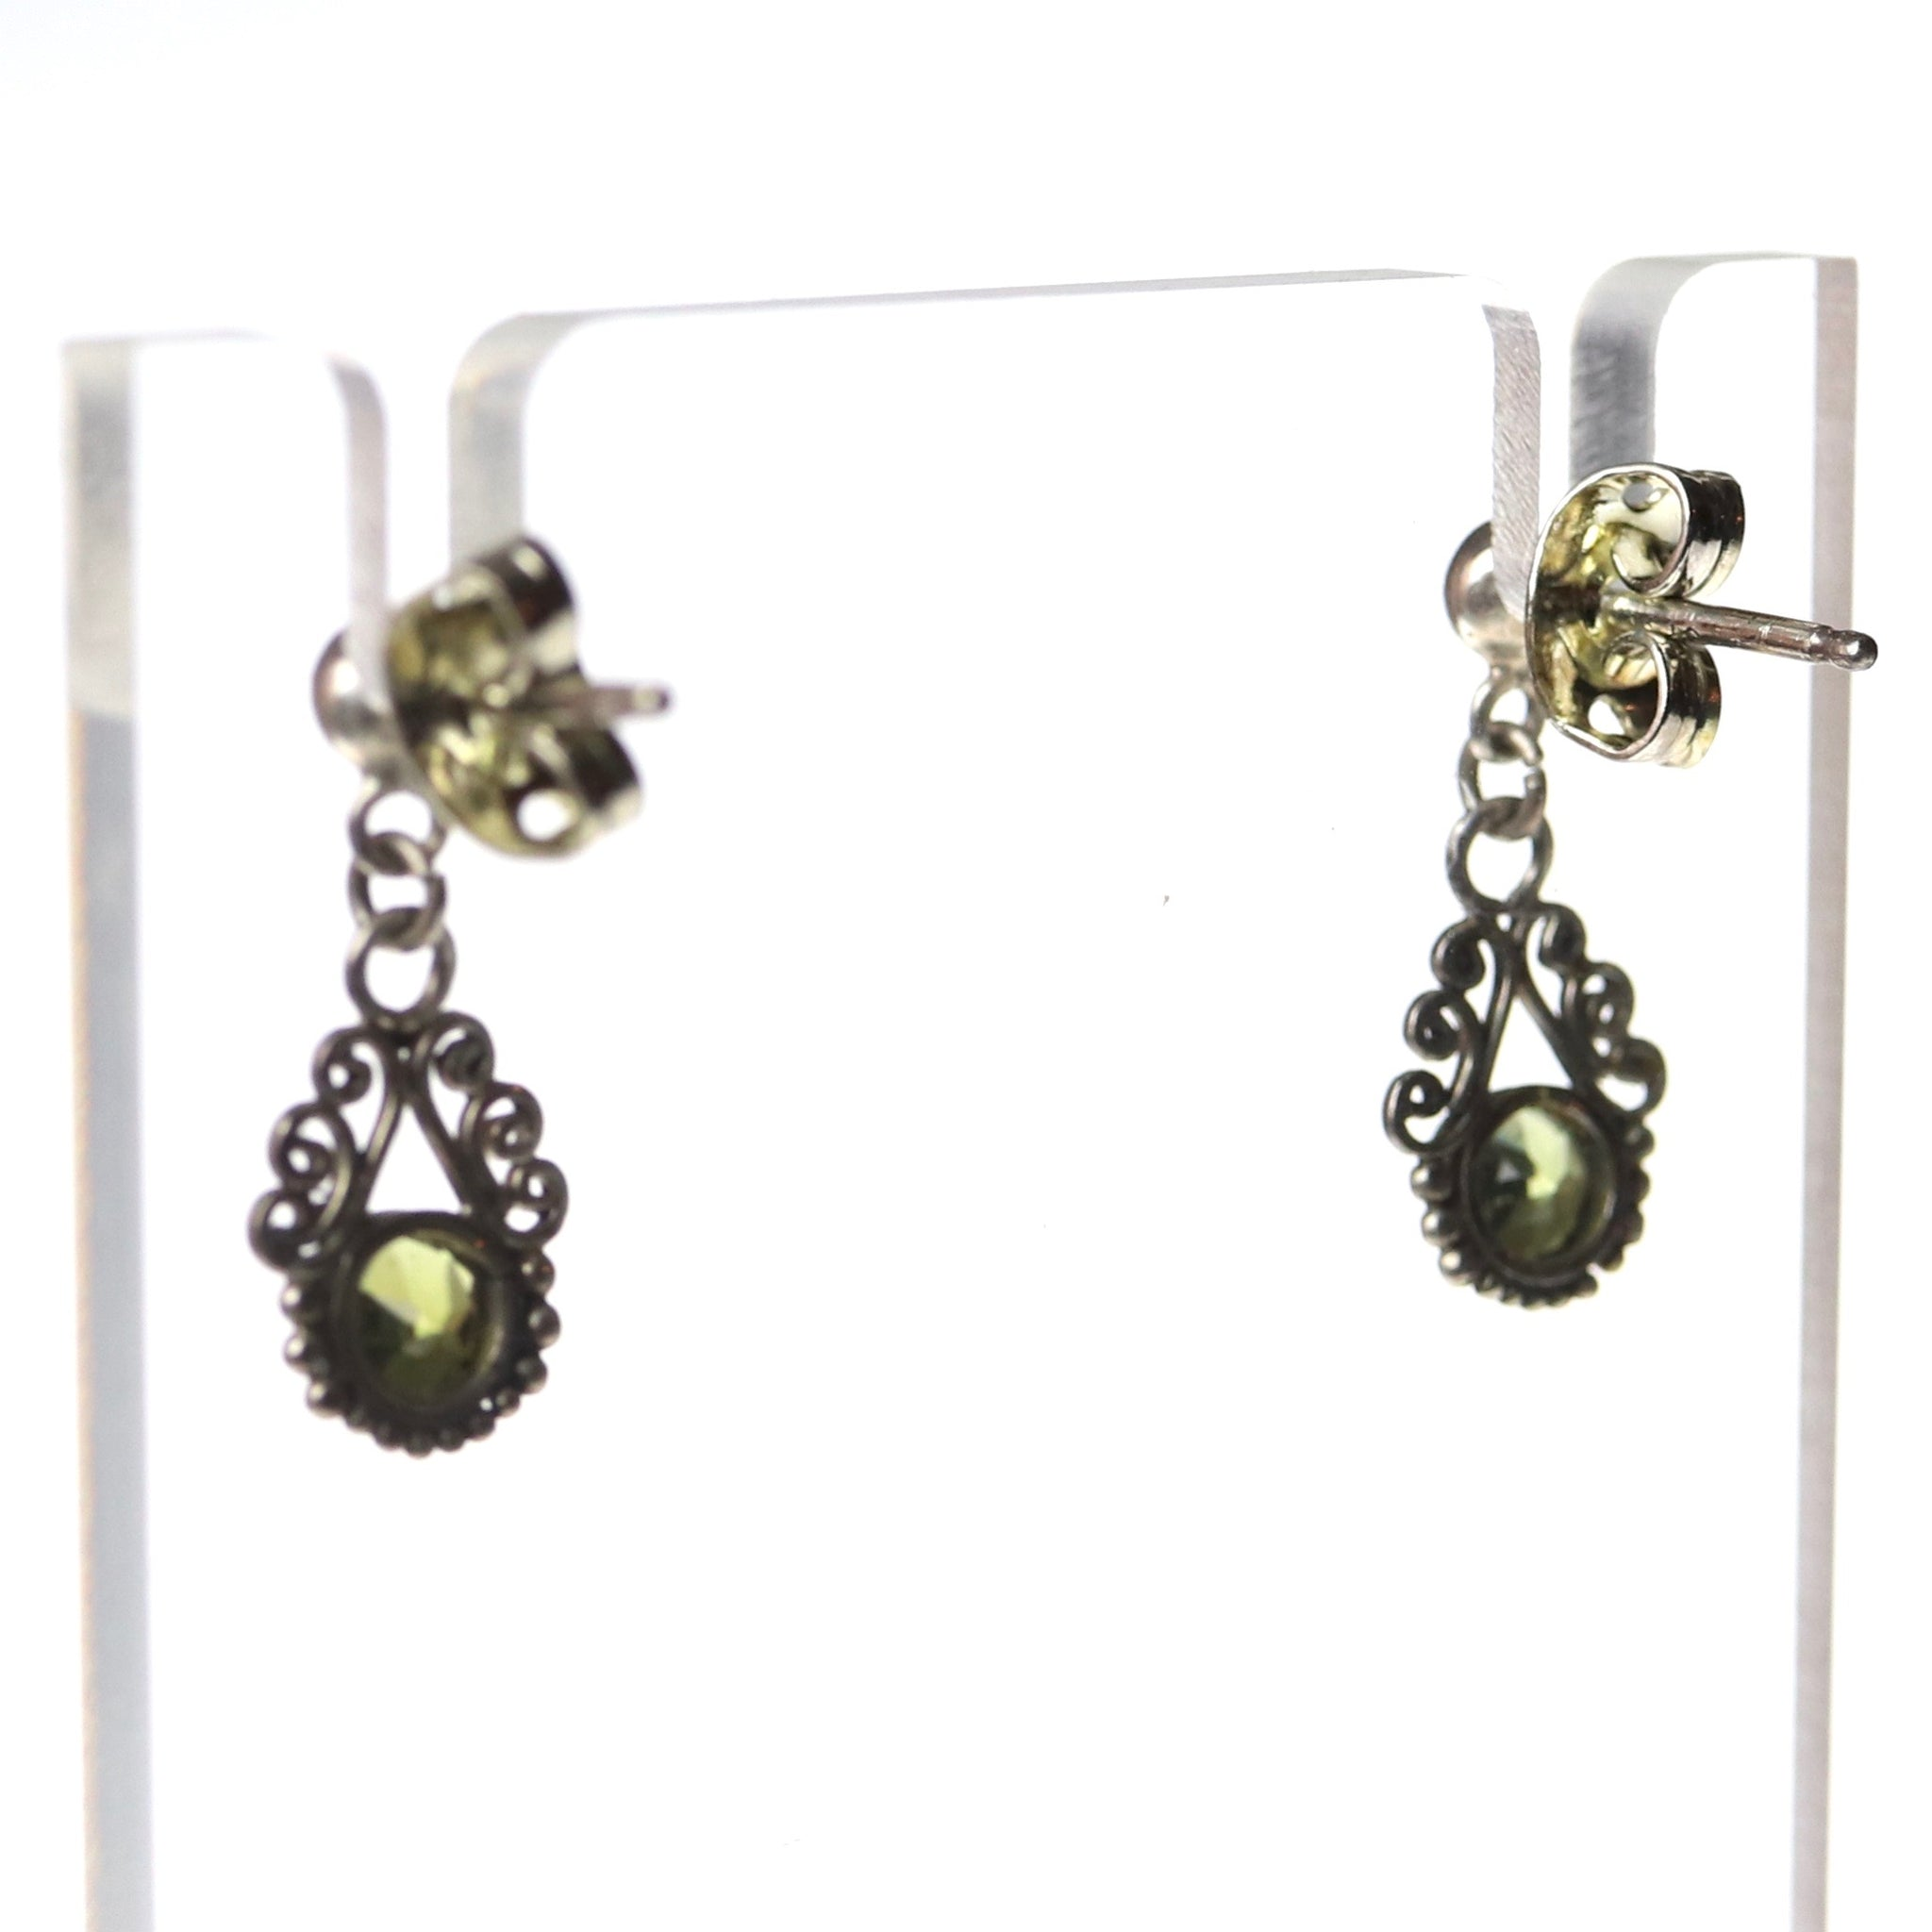 The Adelphi Teardrop Earrings